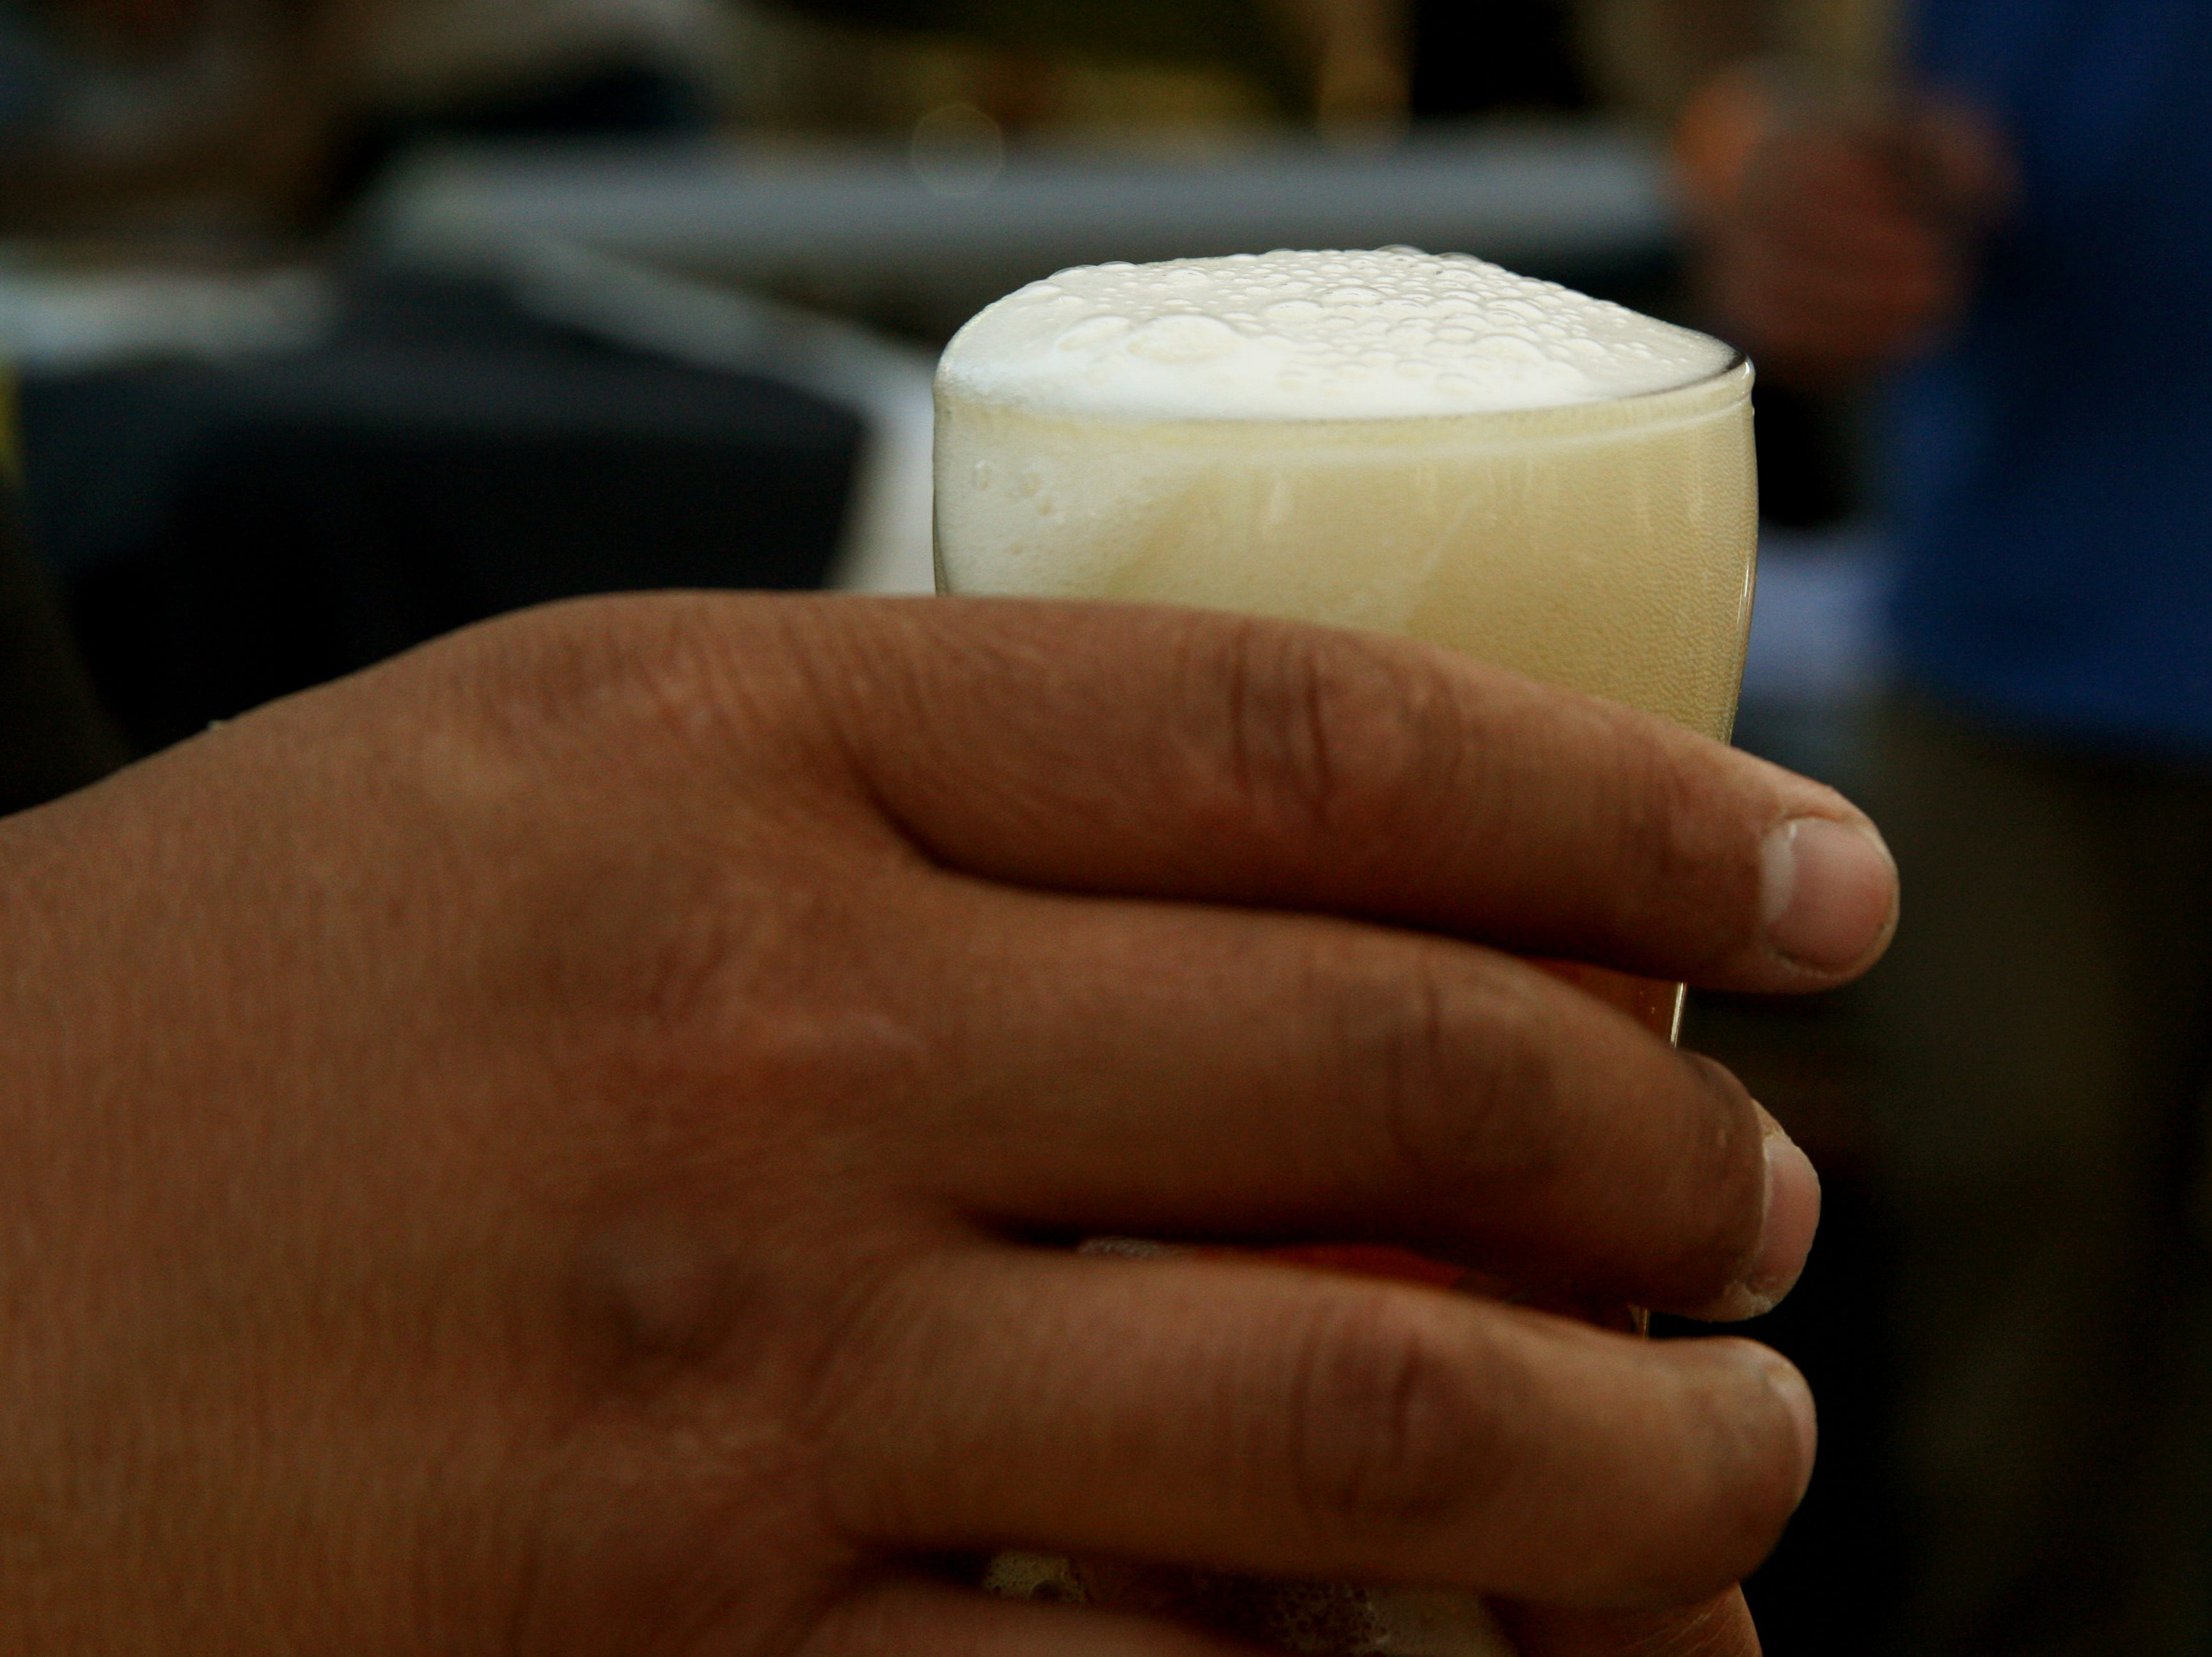 A customer waits for the foam in his beer to settle. May 4, 2019.